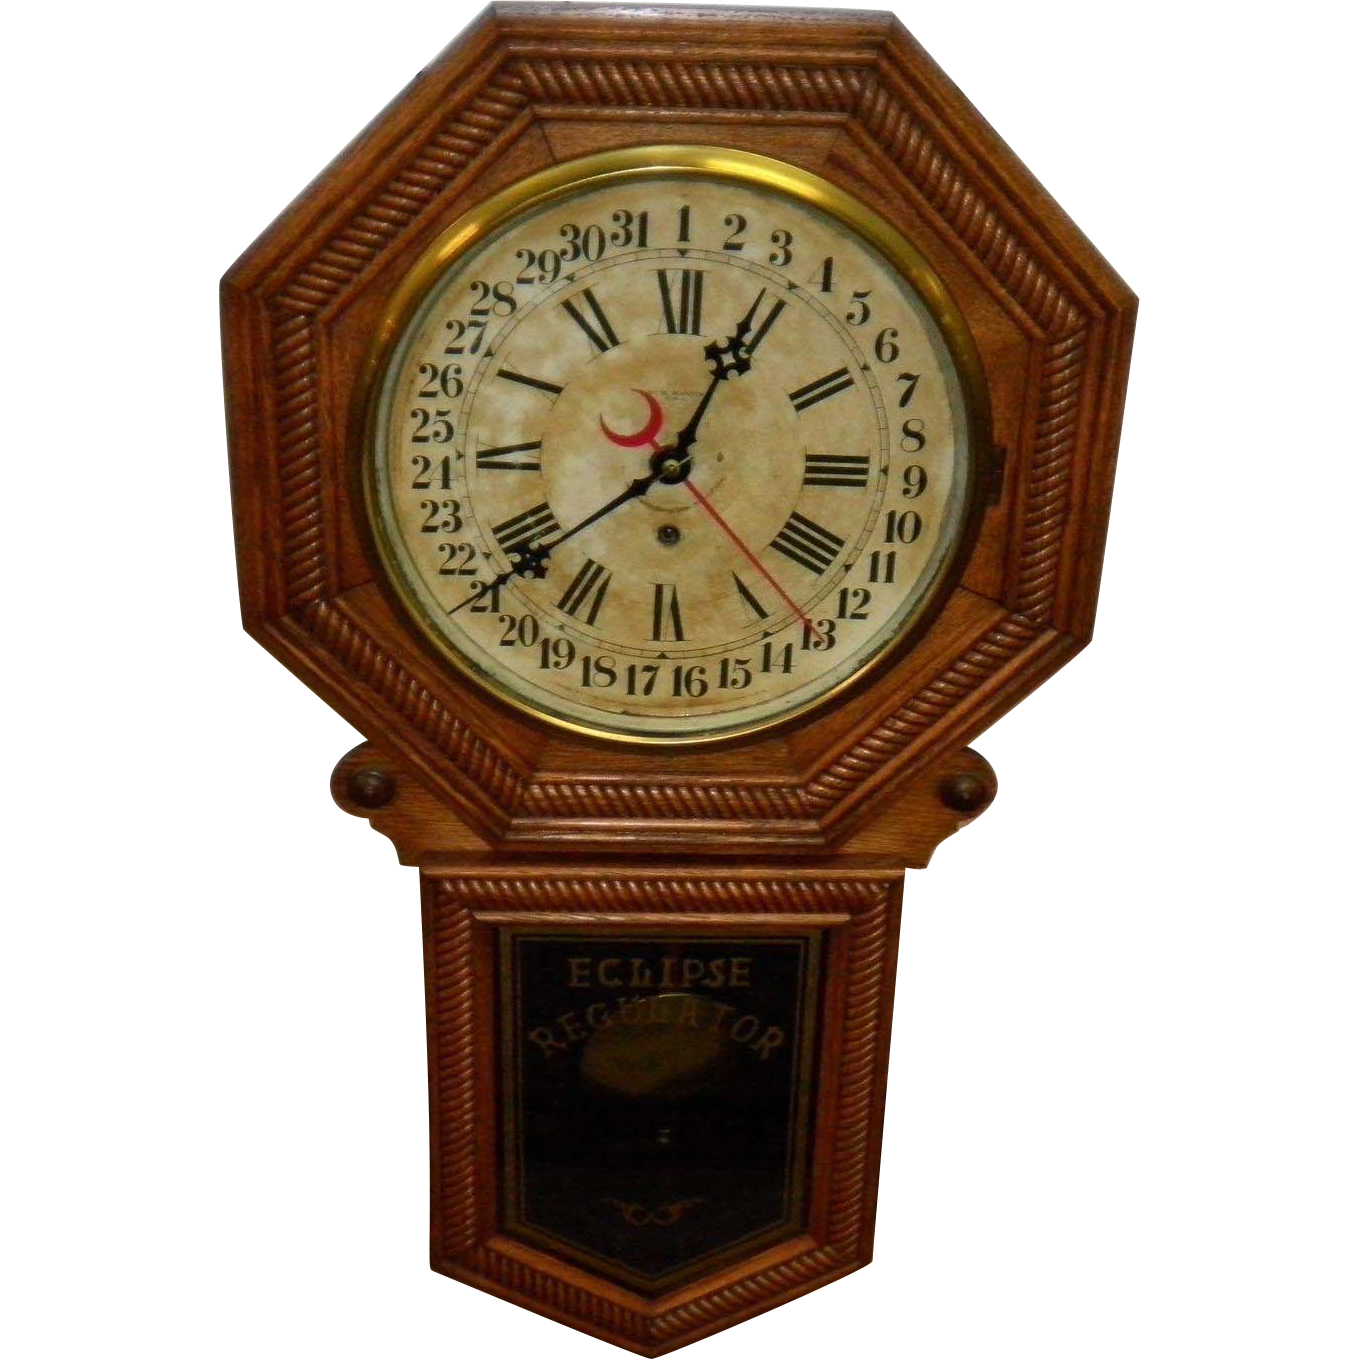 Antique new haven eclipse regulator wall clock from cameo antiques antique new haven eclipse regulator wall clock amipublicfo Image collections